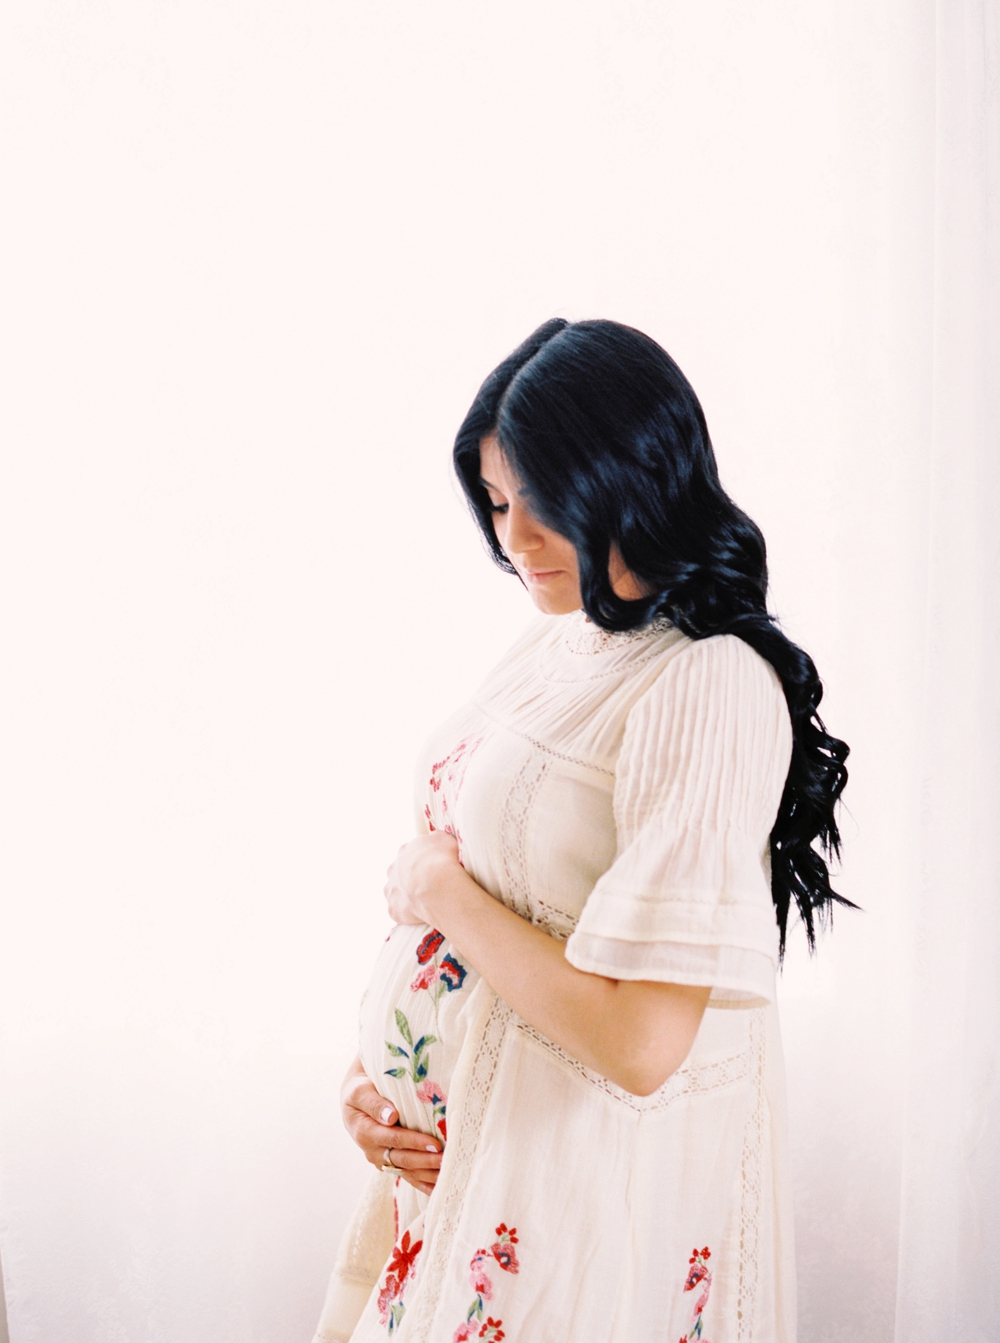 Calgary Family Photographers | Maternity Photography | Convey The Moment | Expecting a Baby